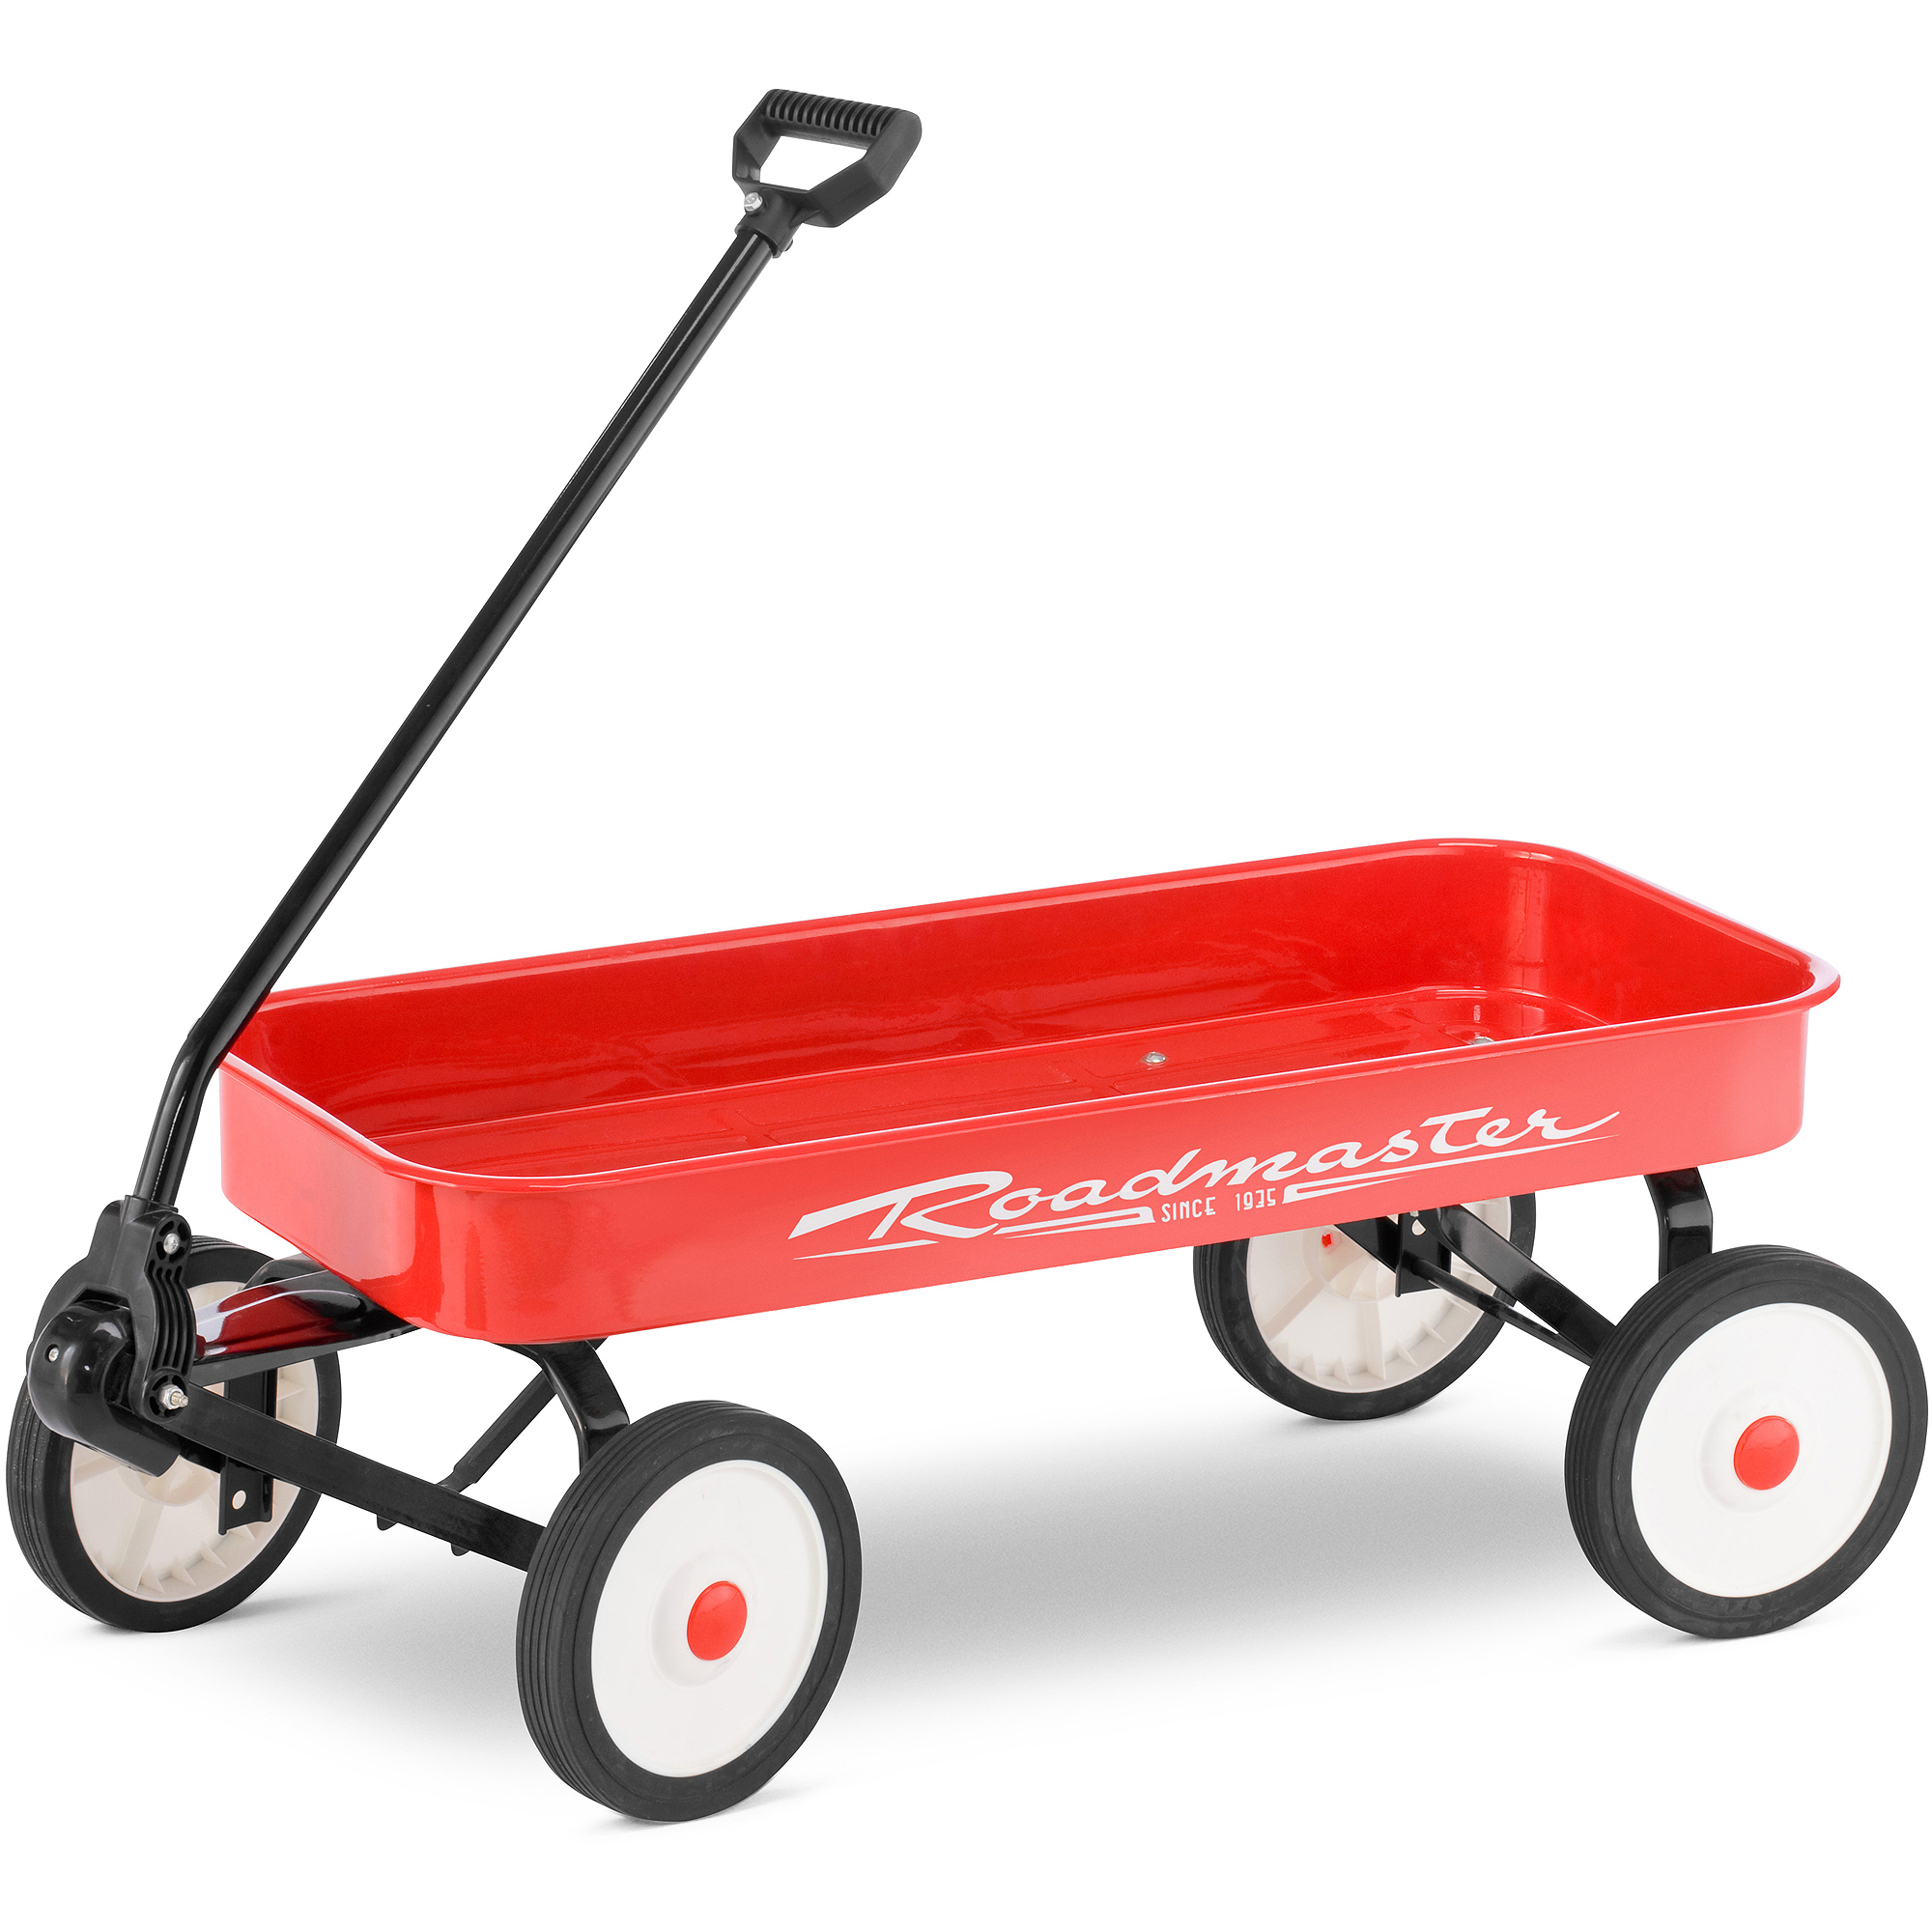 "Roadmaster 34"" Steel Wagon, Red"